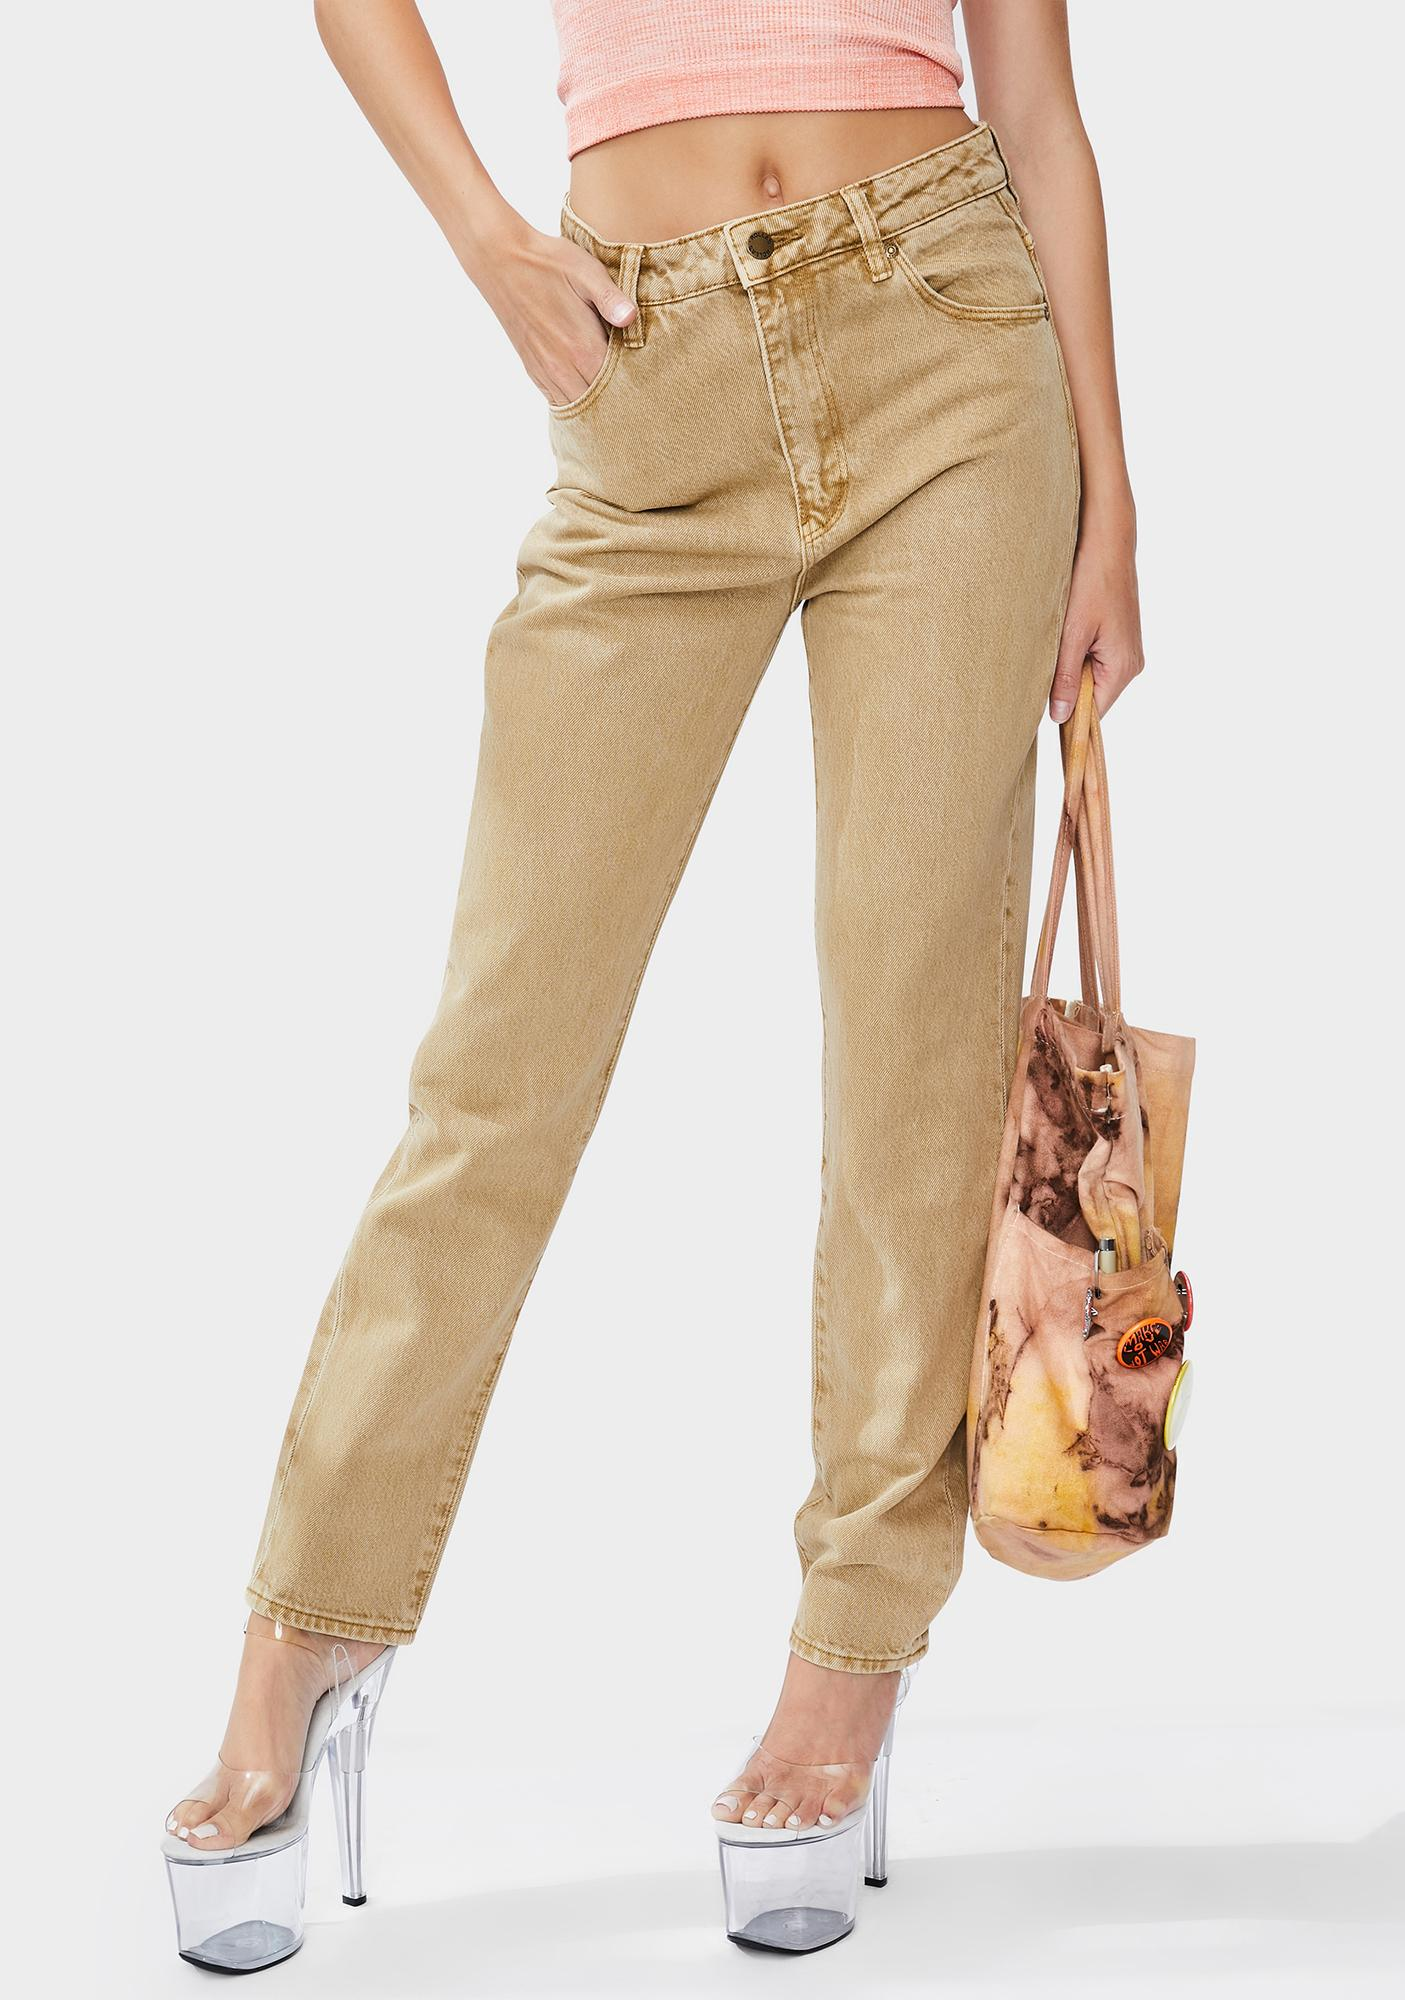 Rollas Harvest Duster Jeans